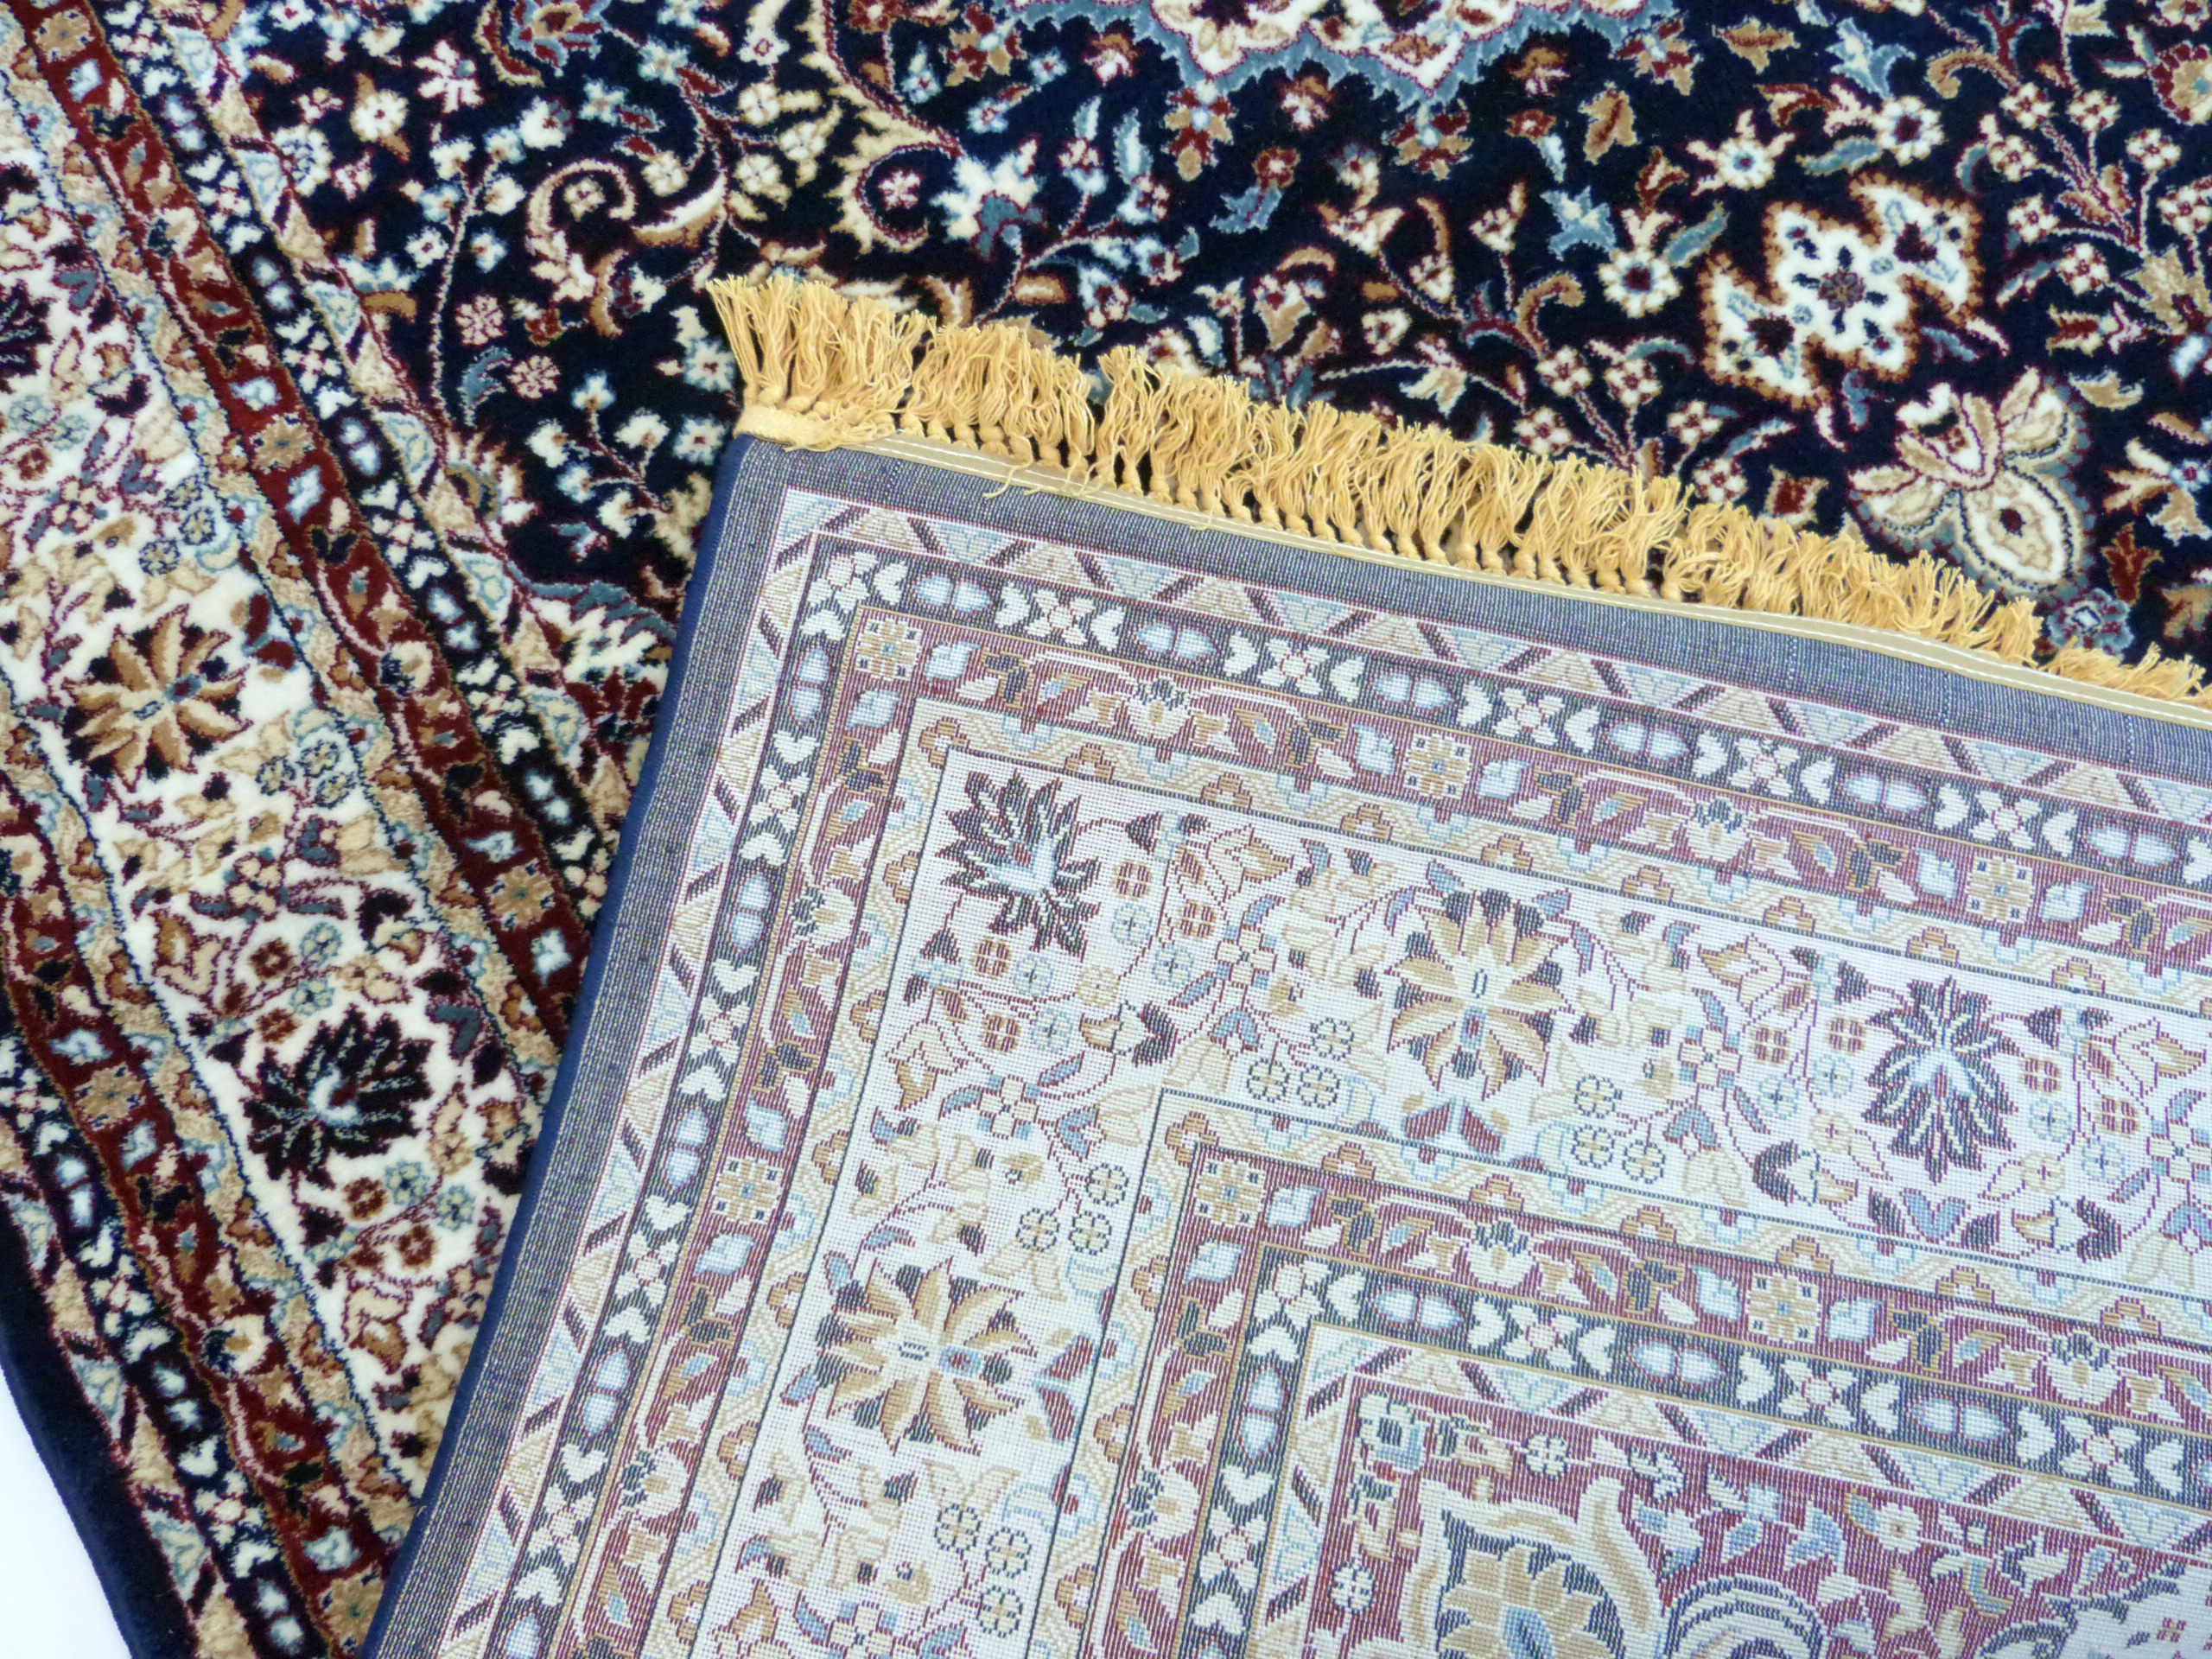 Rich blue ground full pile Turkish Carpet, with floral medallion design 320cm x 200cm approximately - Image 5 of 8